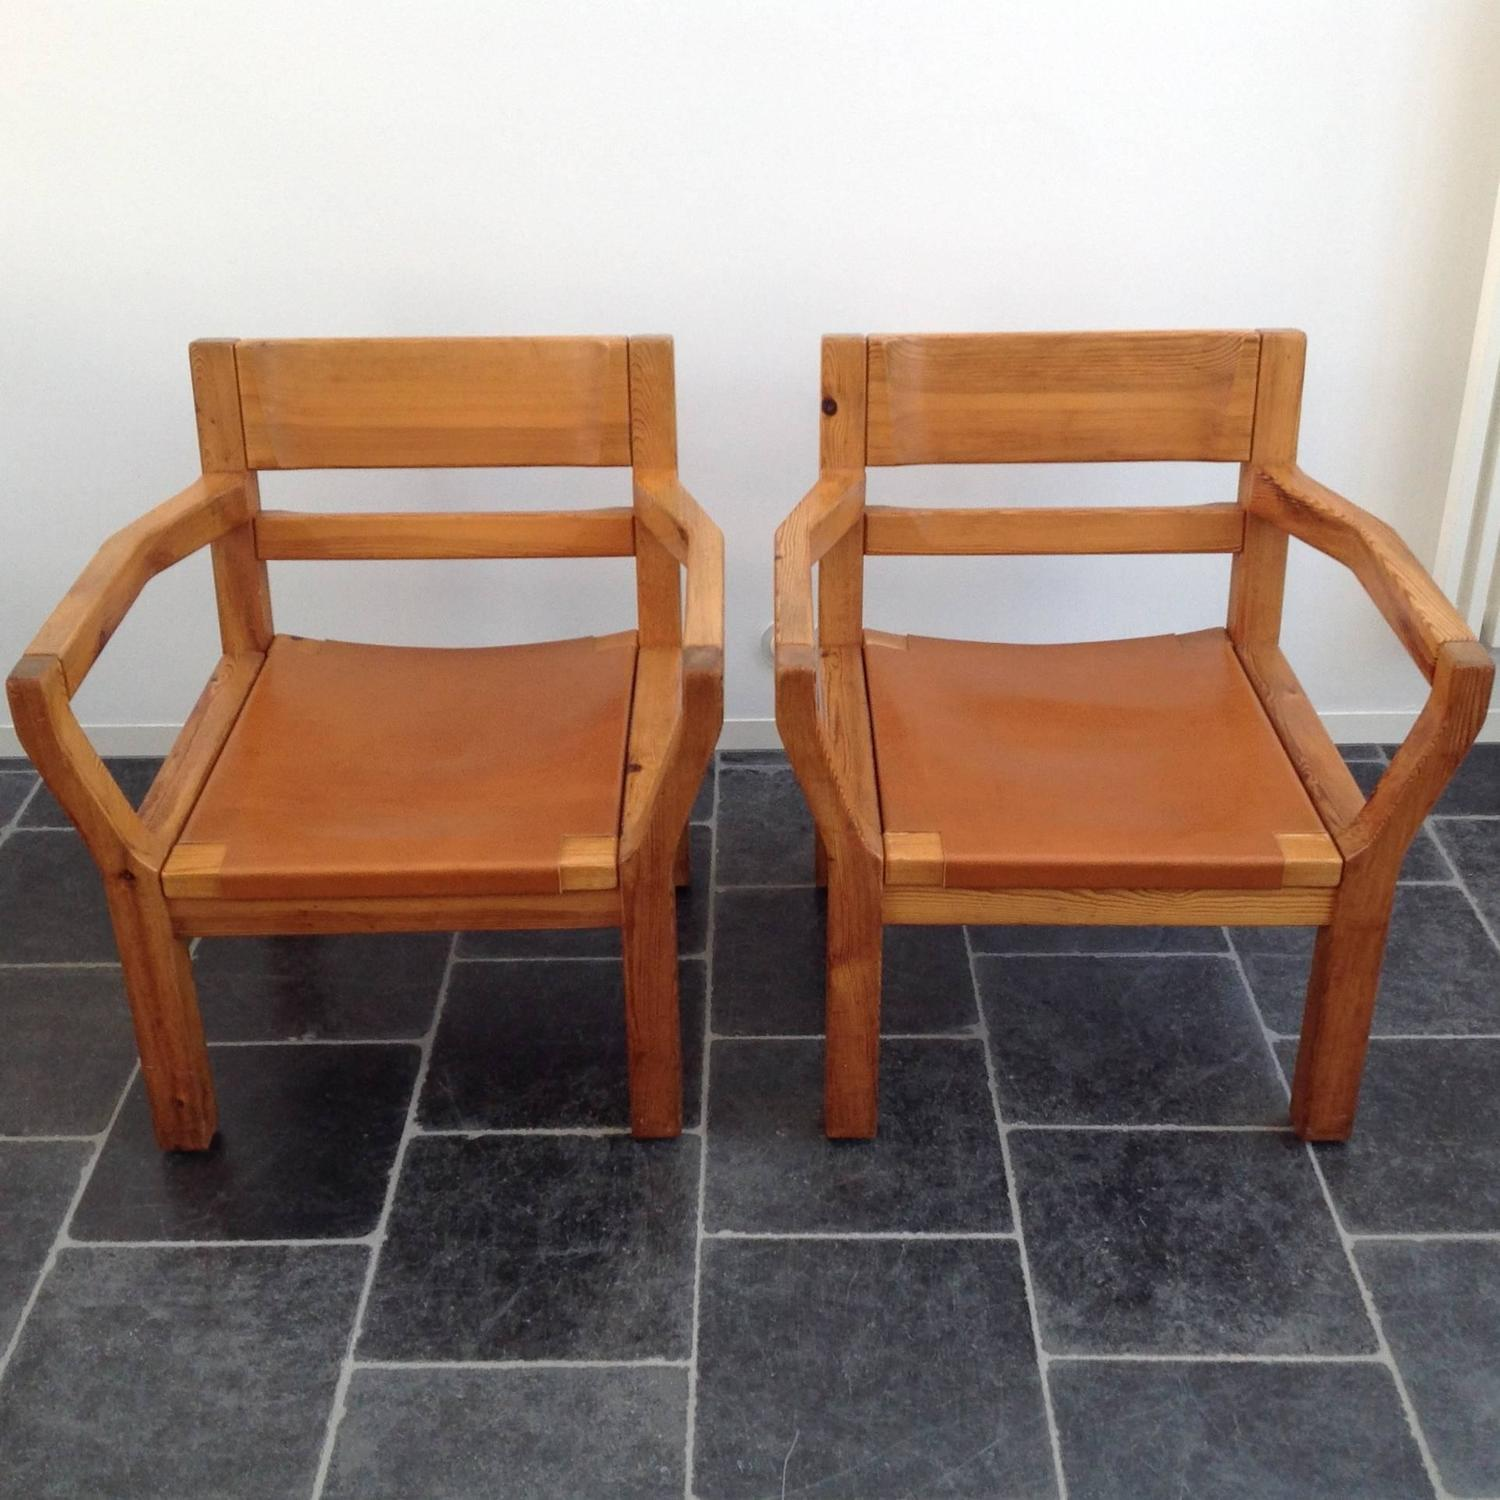 Comfortable Easy Chairs Scandinavian Pinewood And Leather